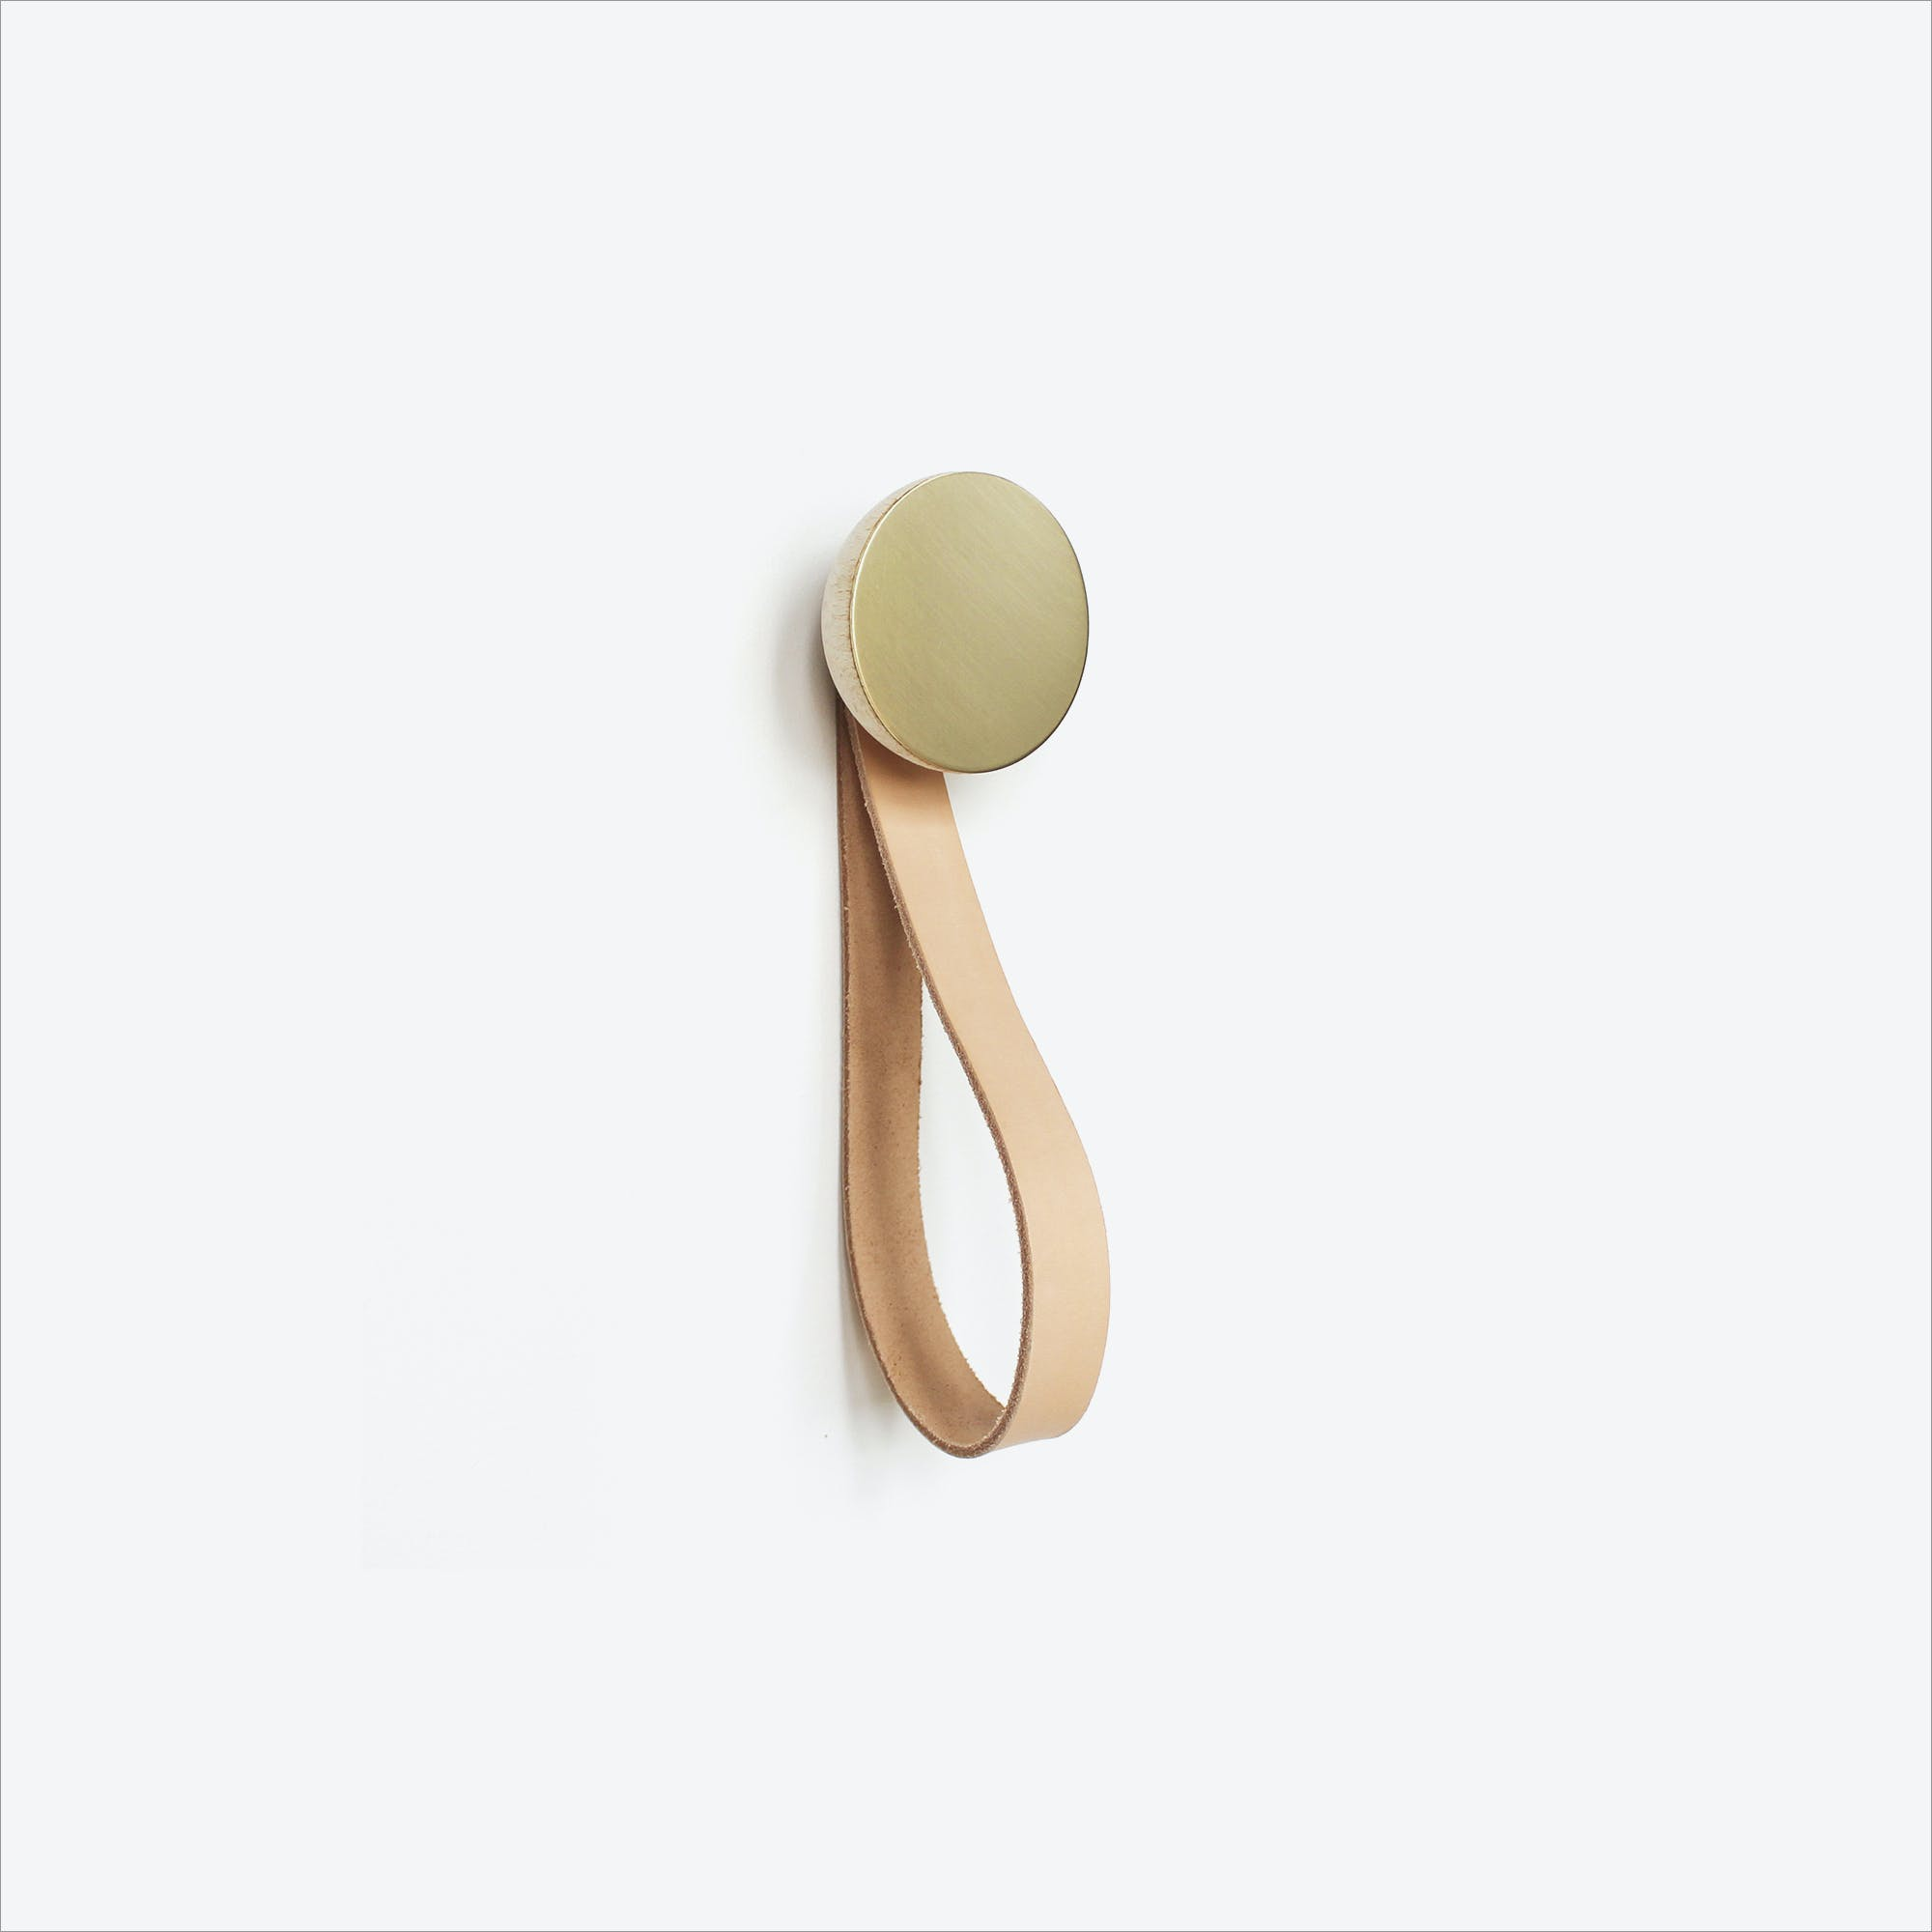 Round Beech Wood & Brass Wall Hook with Leather Strap